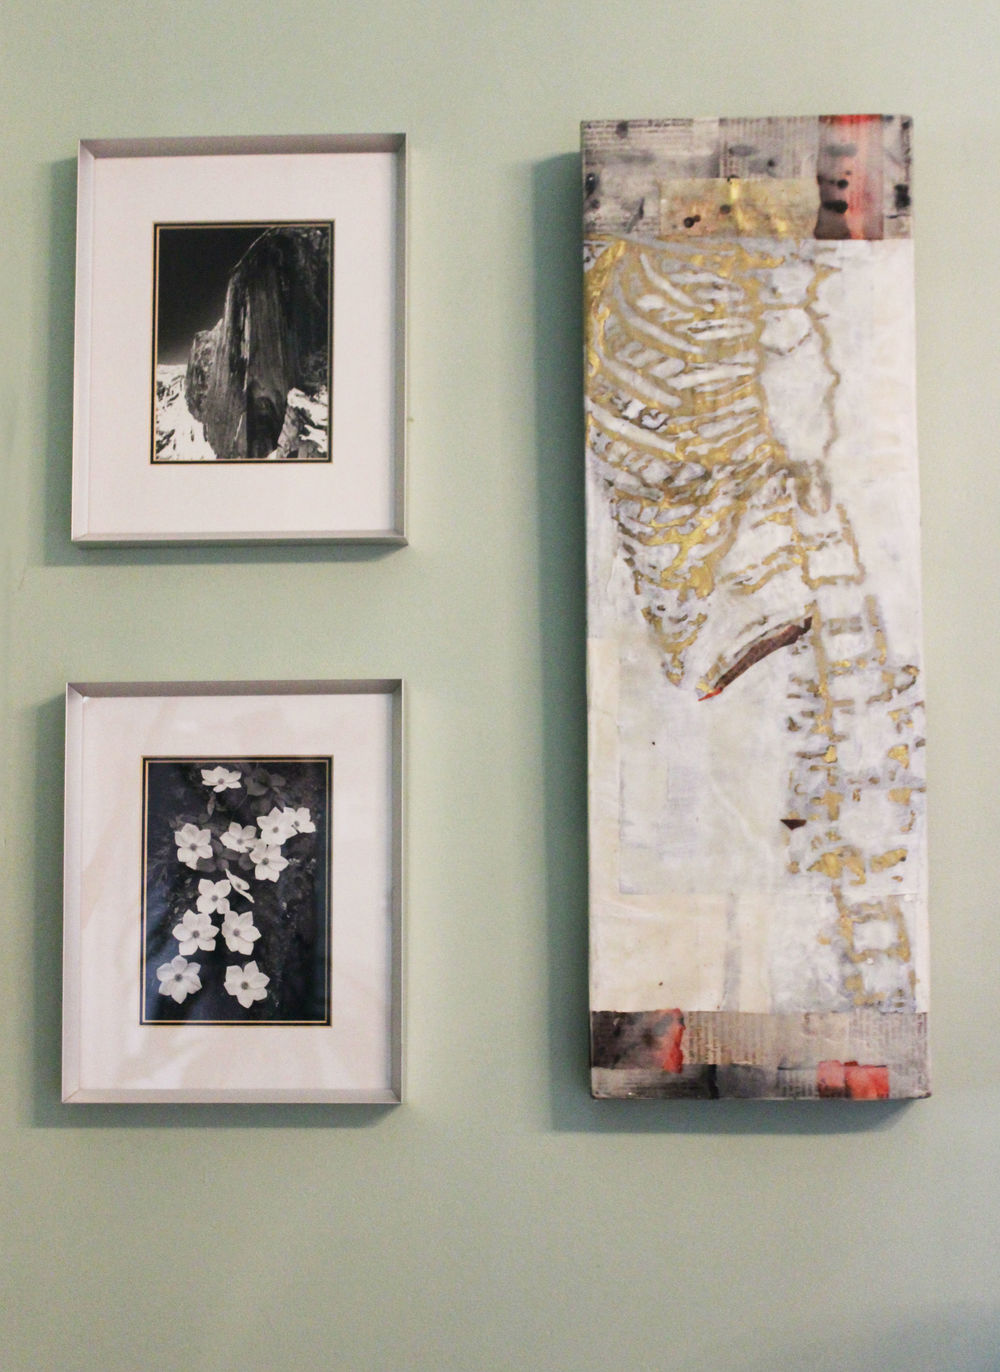 Rectangular: Creating creative shapes is a great start for smaller groupings. The smaller framed works pair well with the encaustic artwork for an eclectic yet modern fit, and their rectangular` format is very classic and alluring.